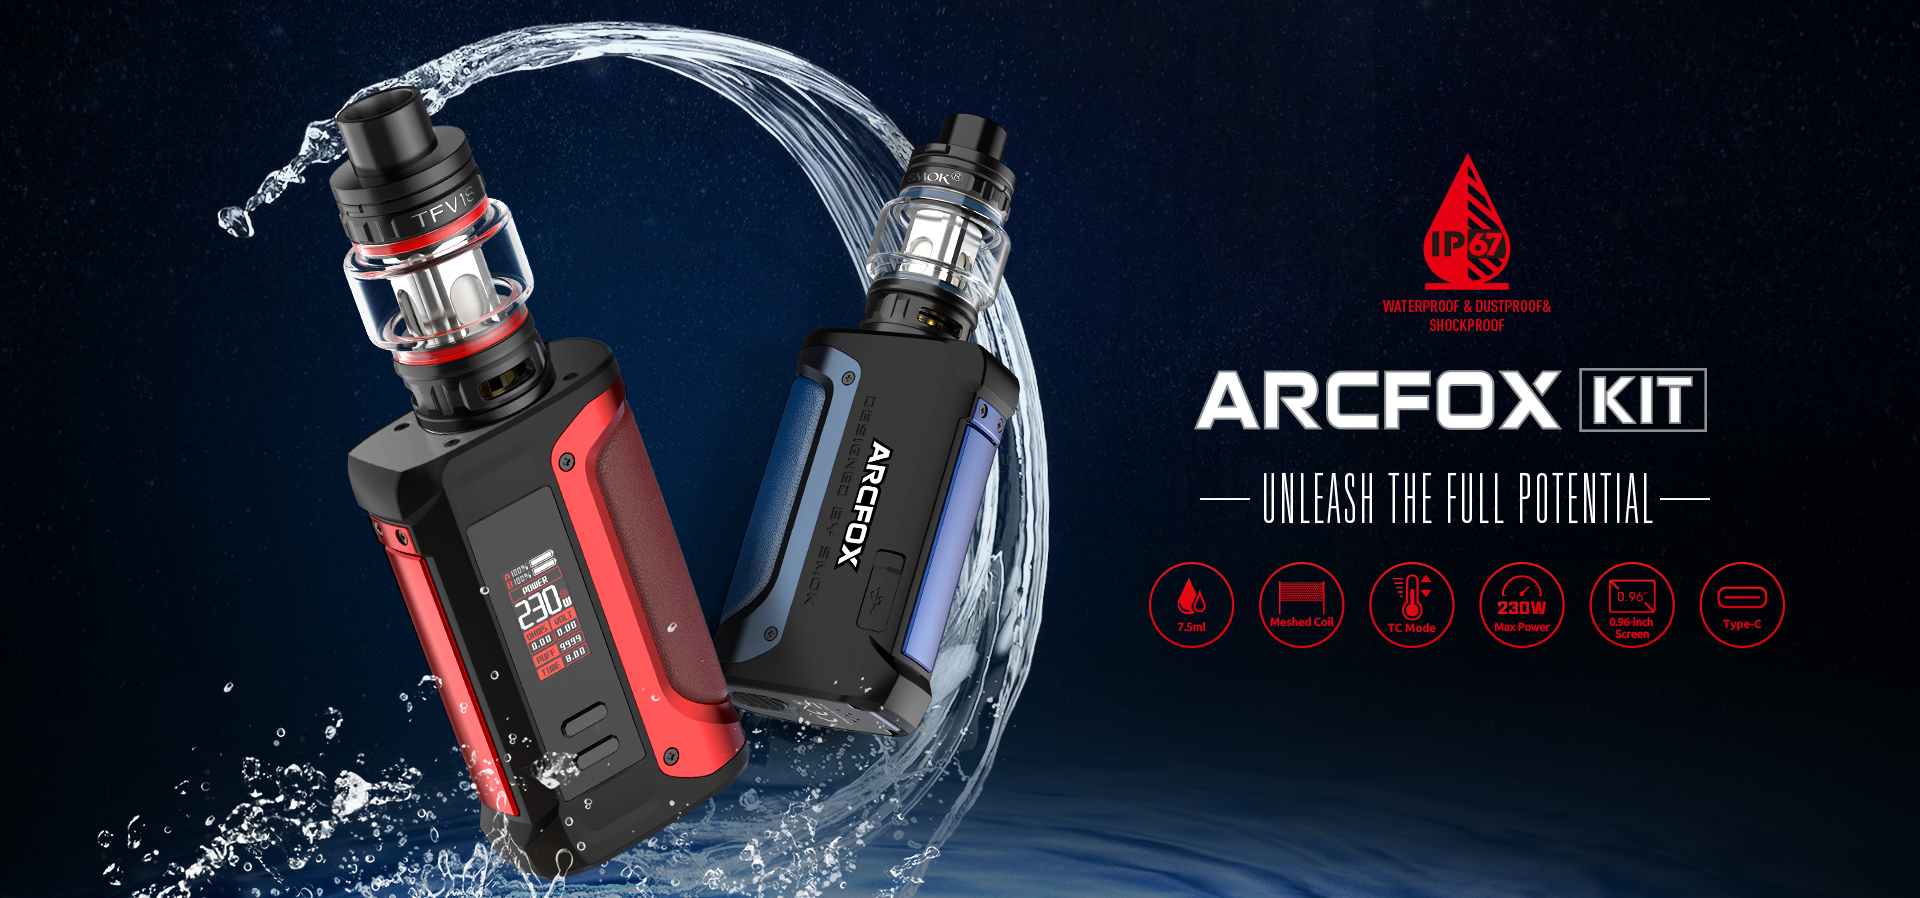 Two SMOK vape kits surrounded by a splash of water.